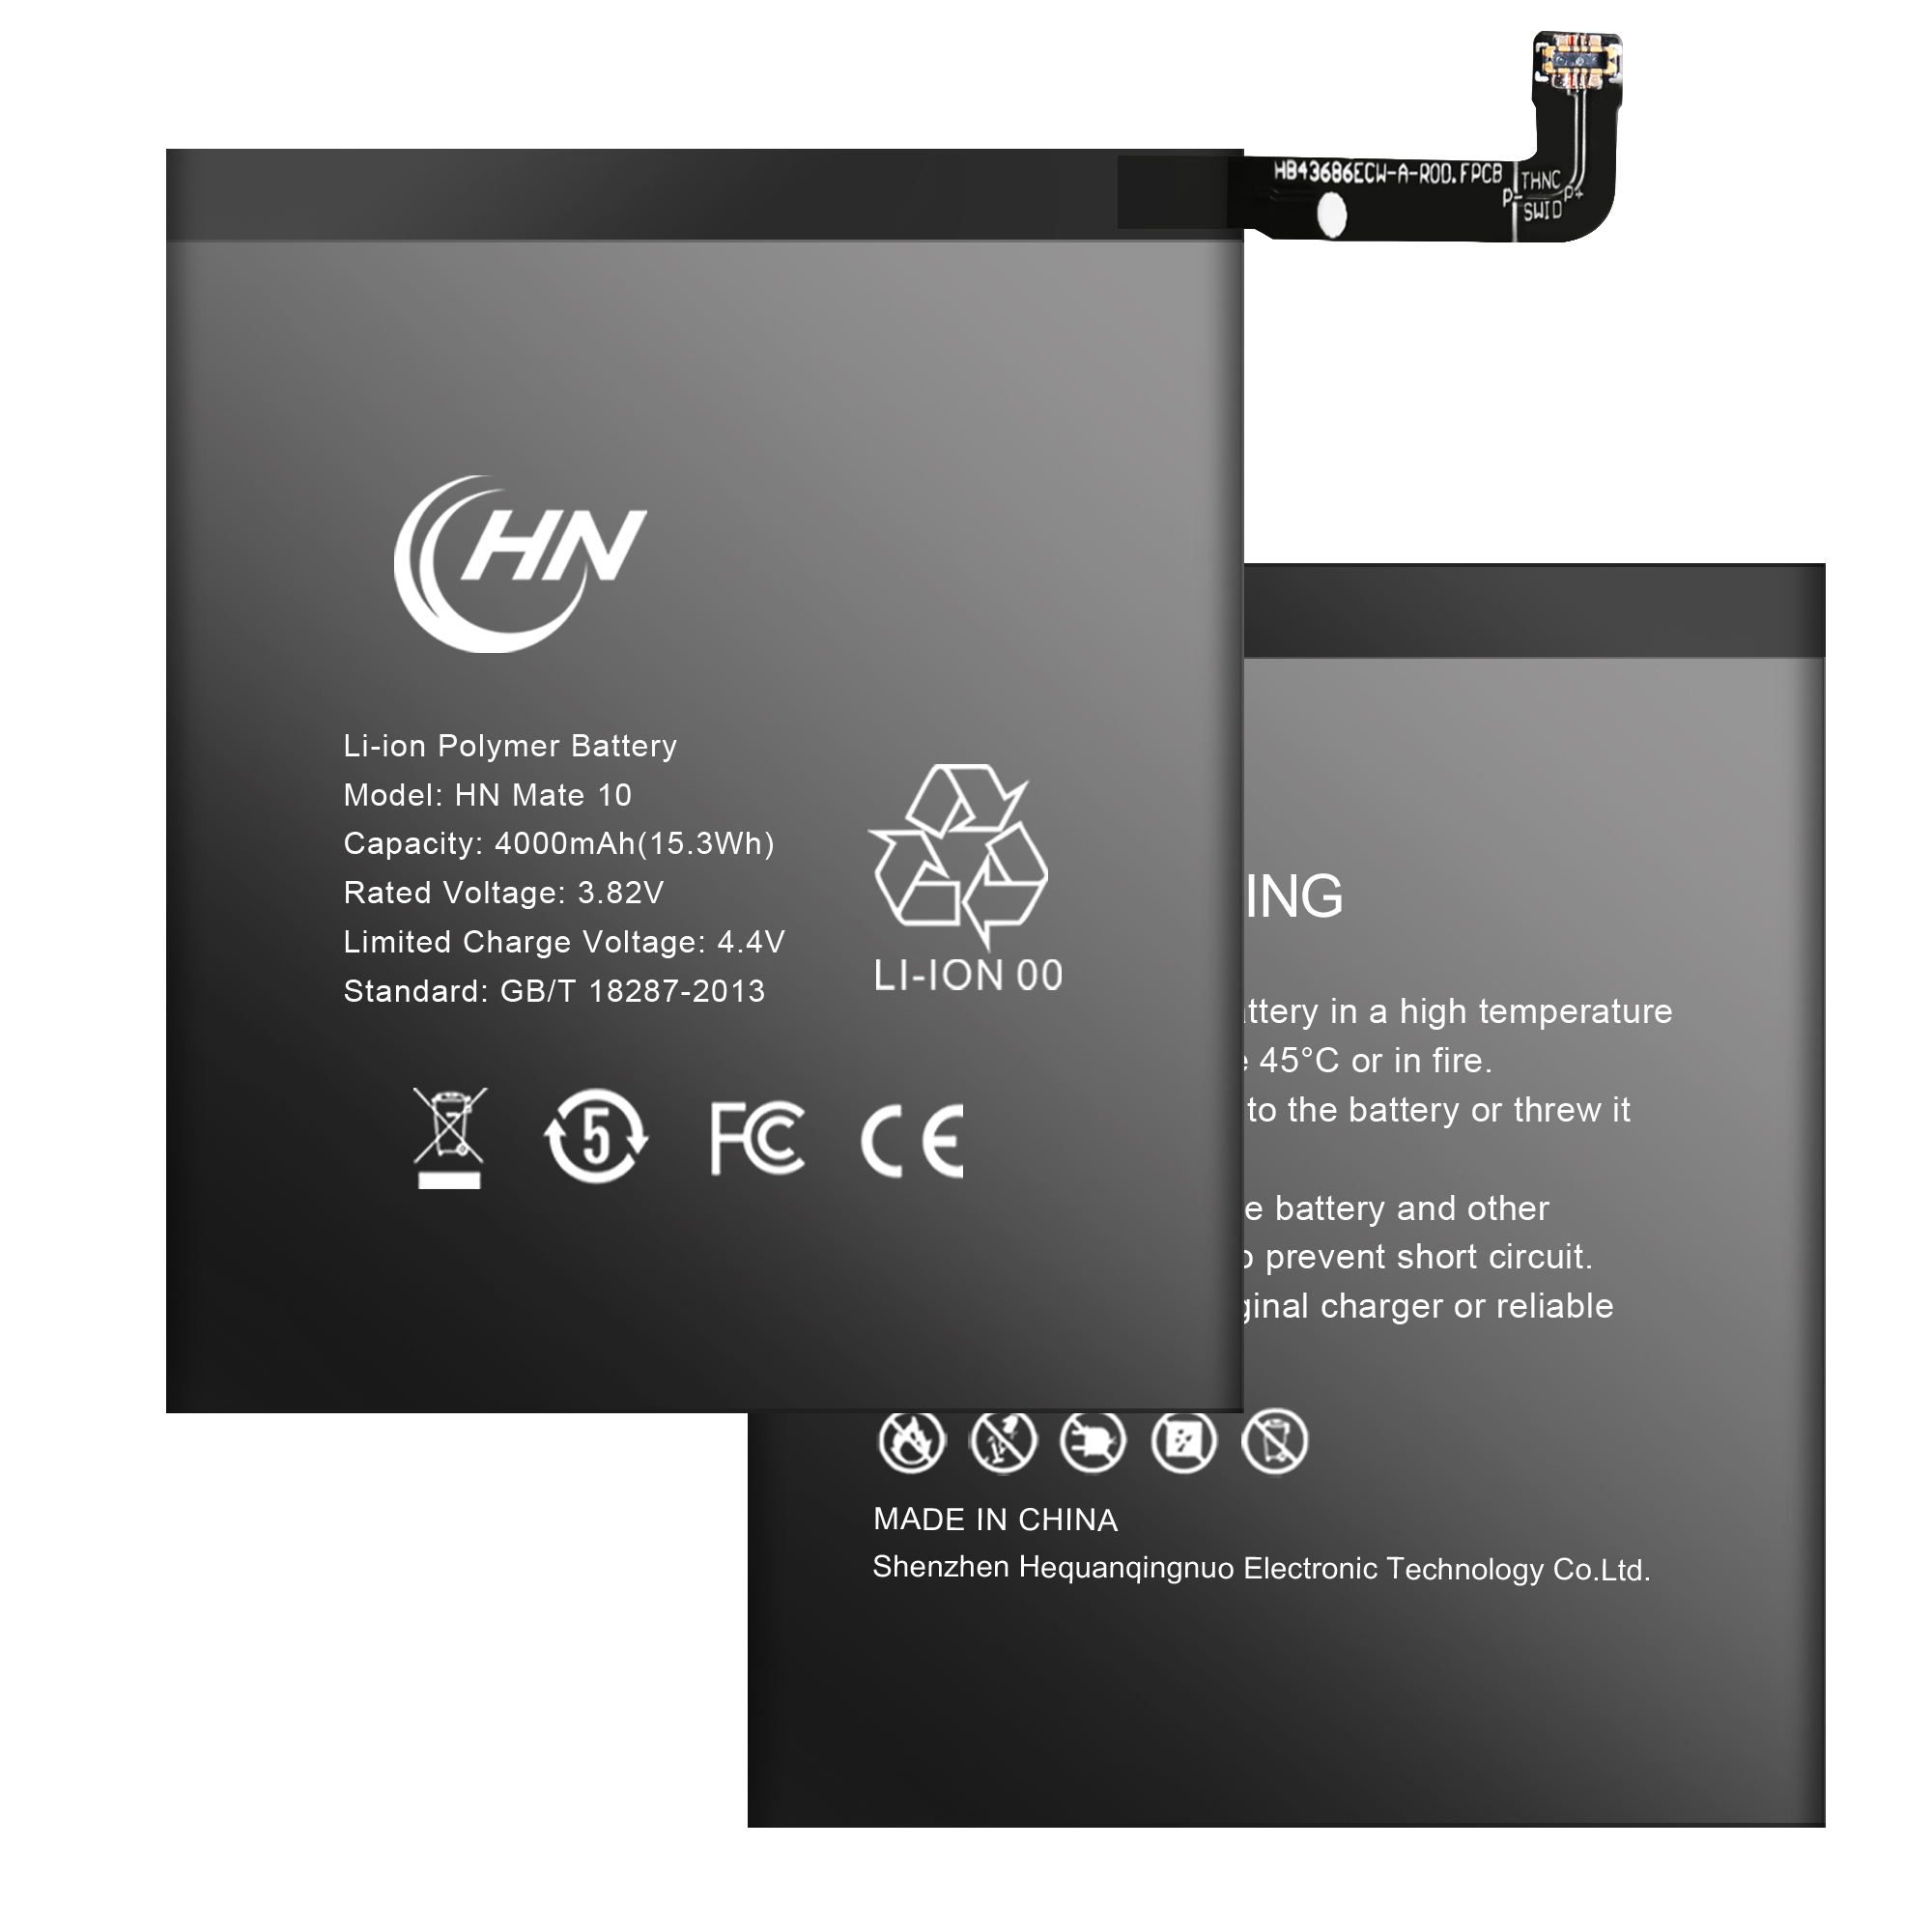 Huawei Mate 10 battery